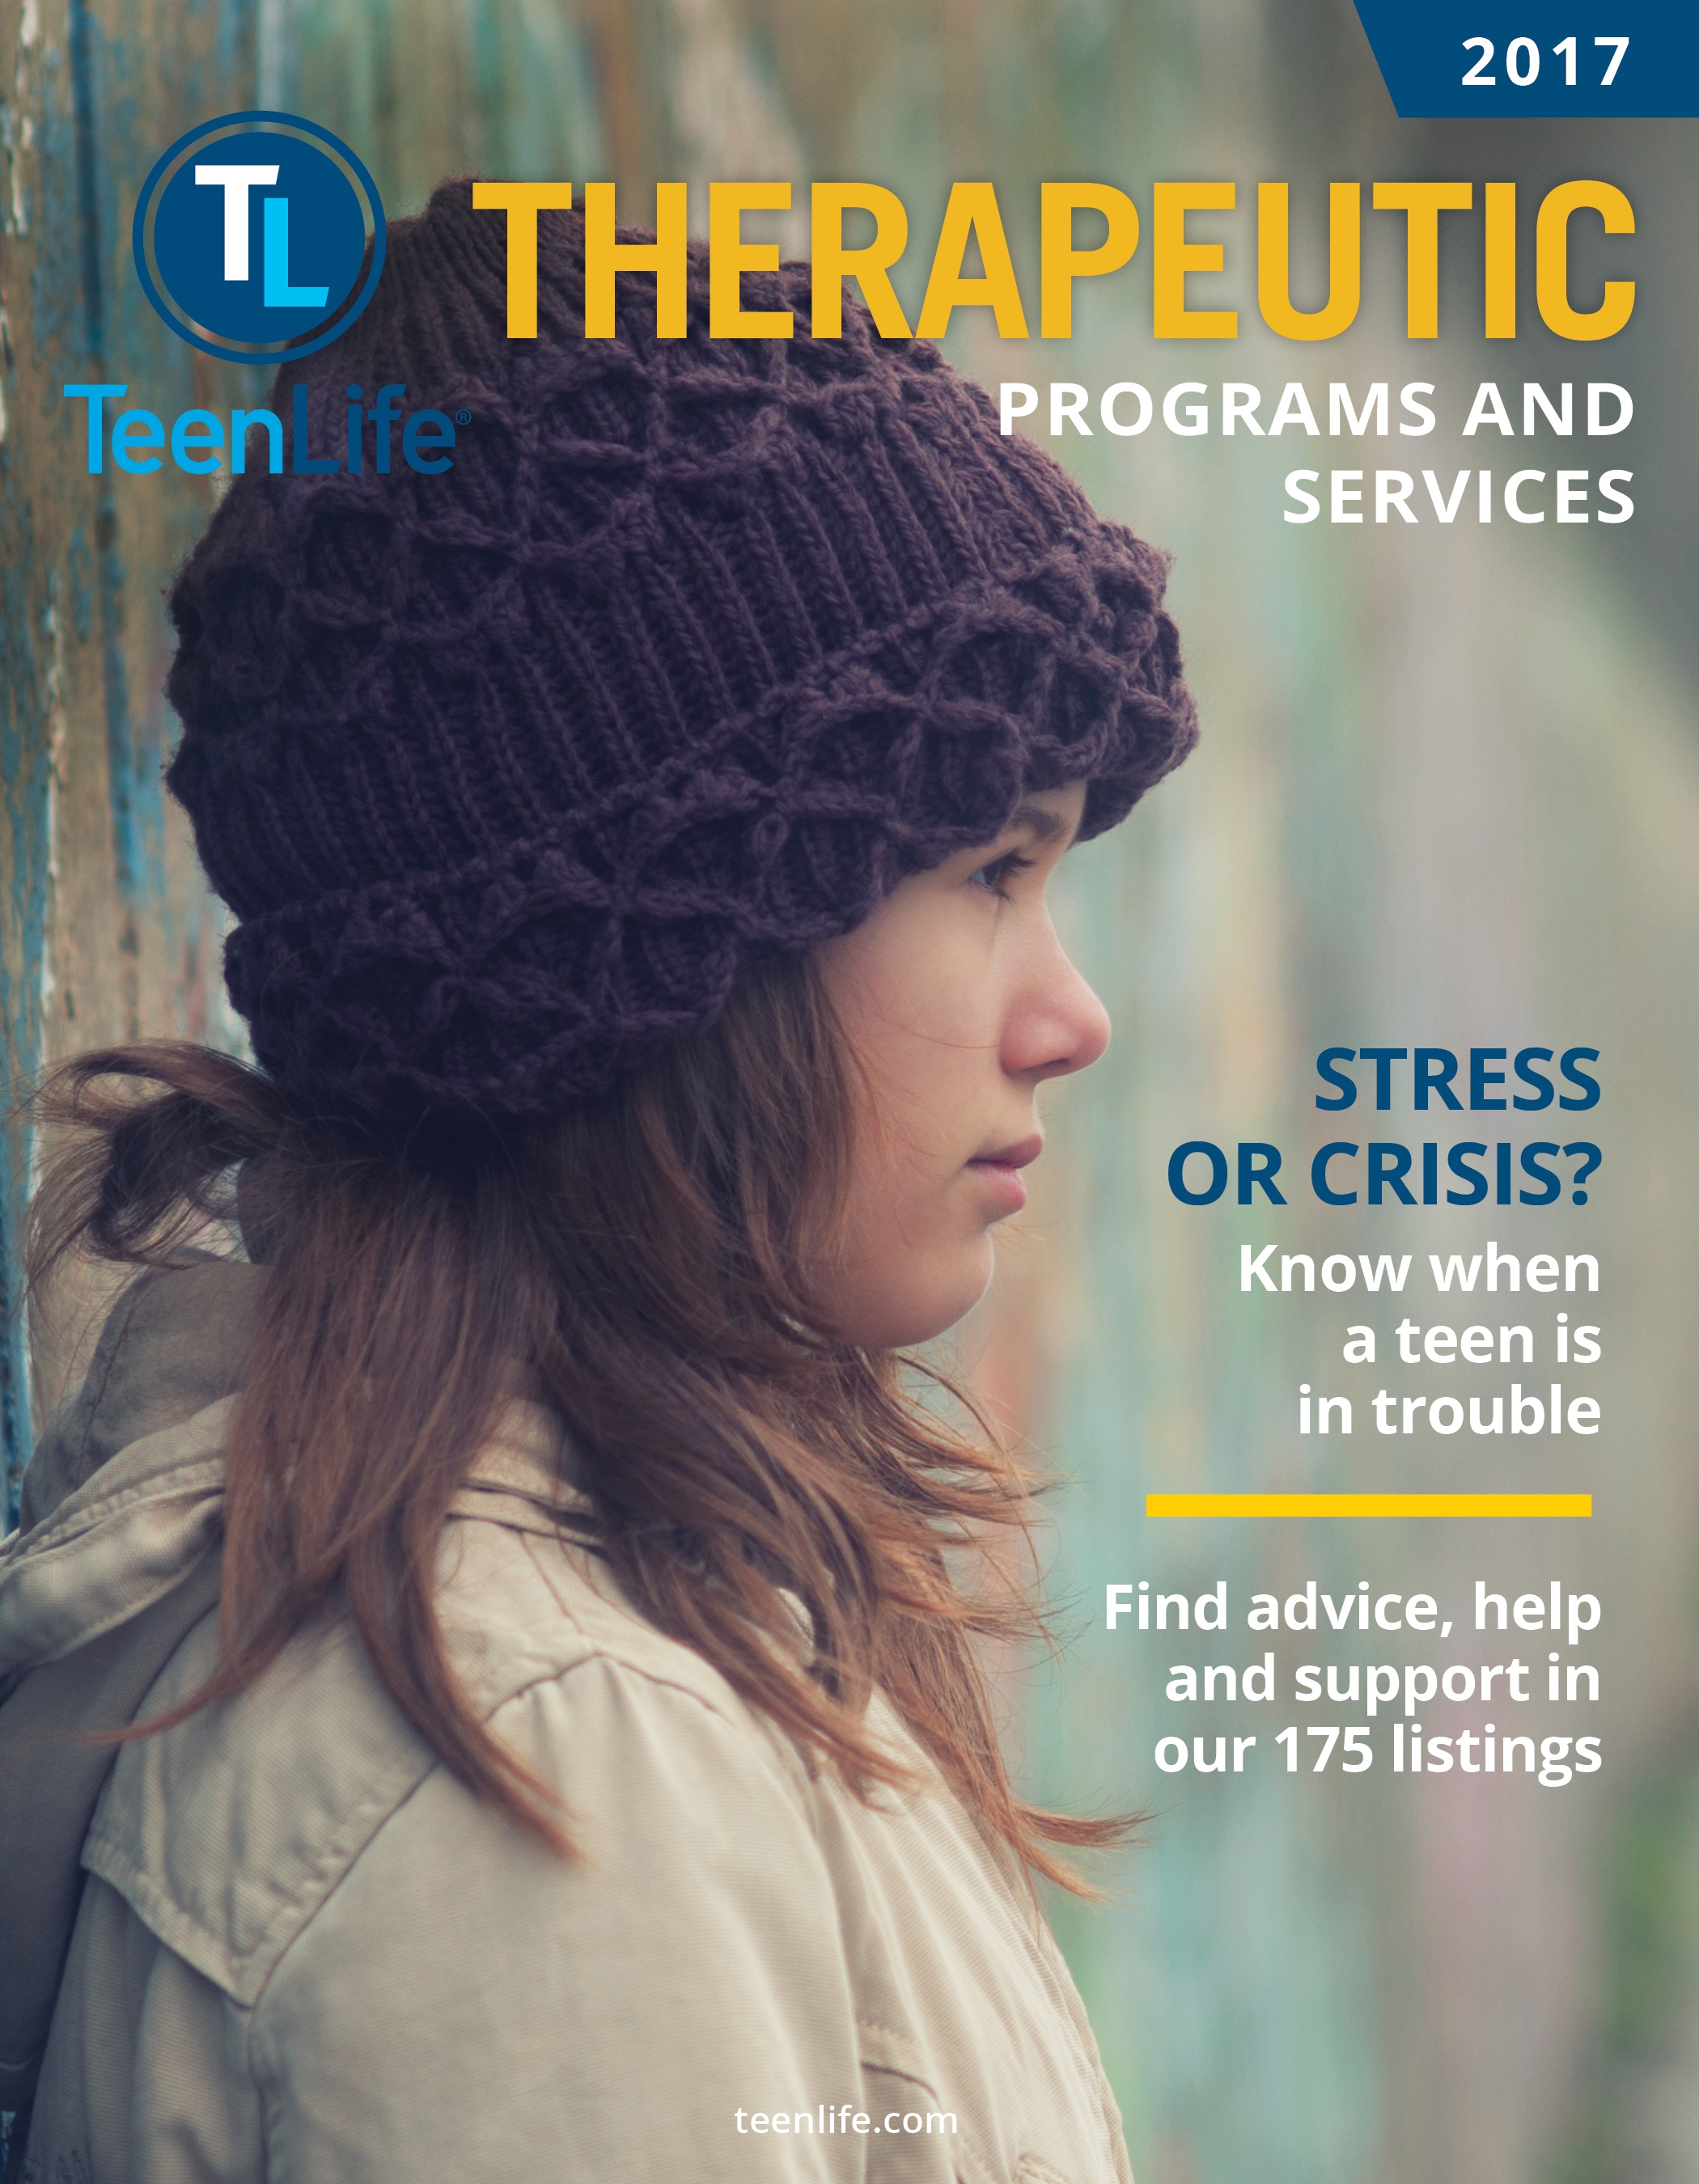 Guide to Therapeutic Programs and Services